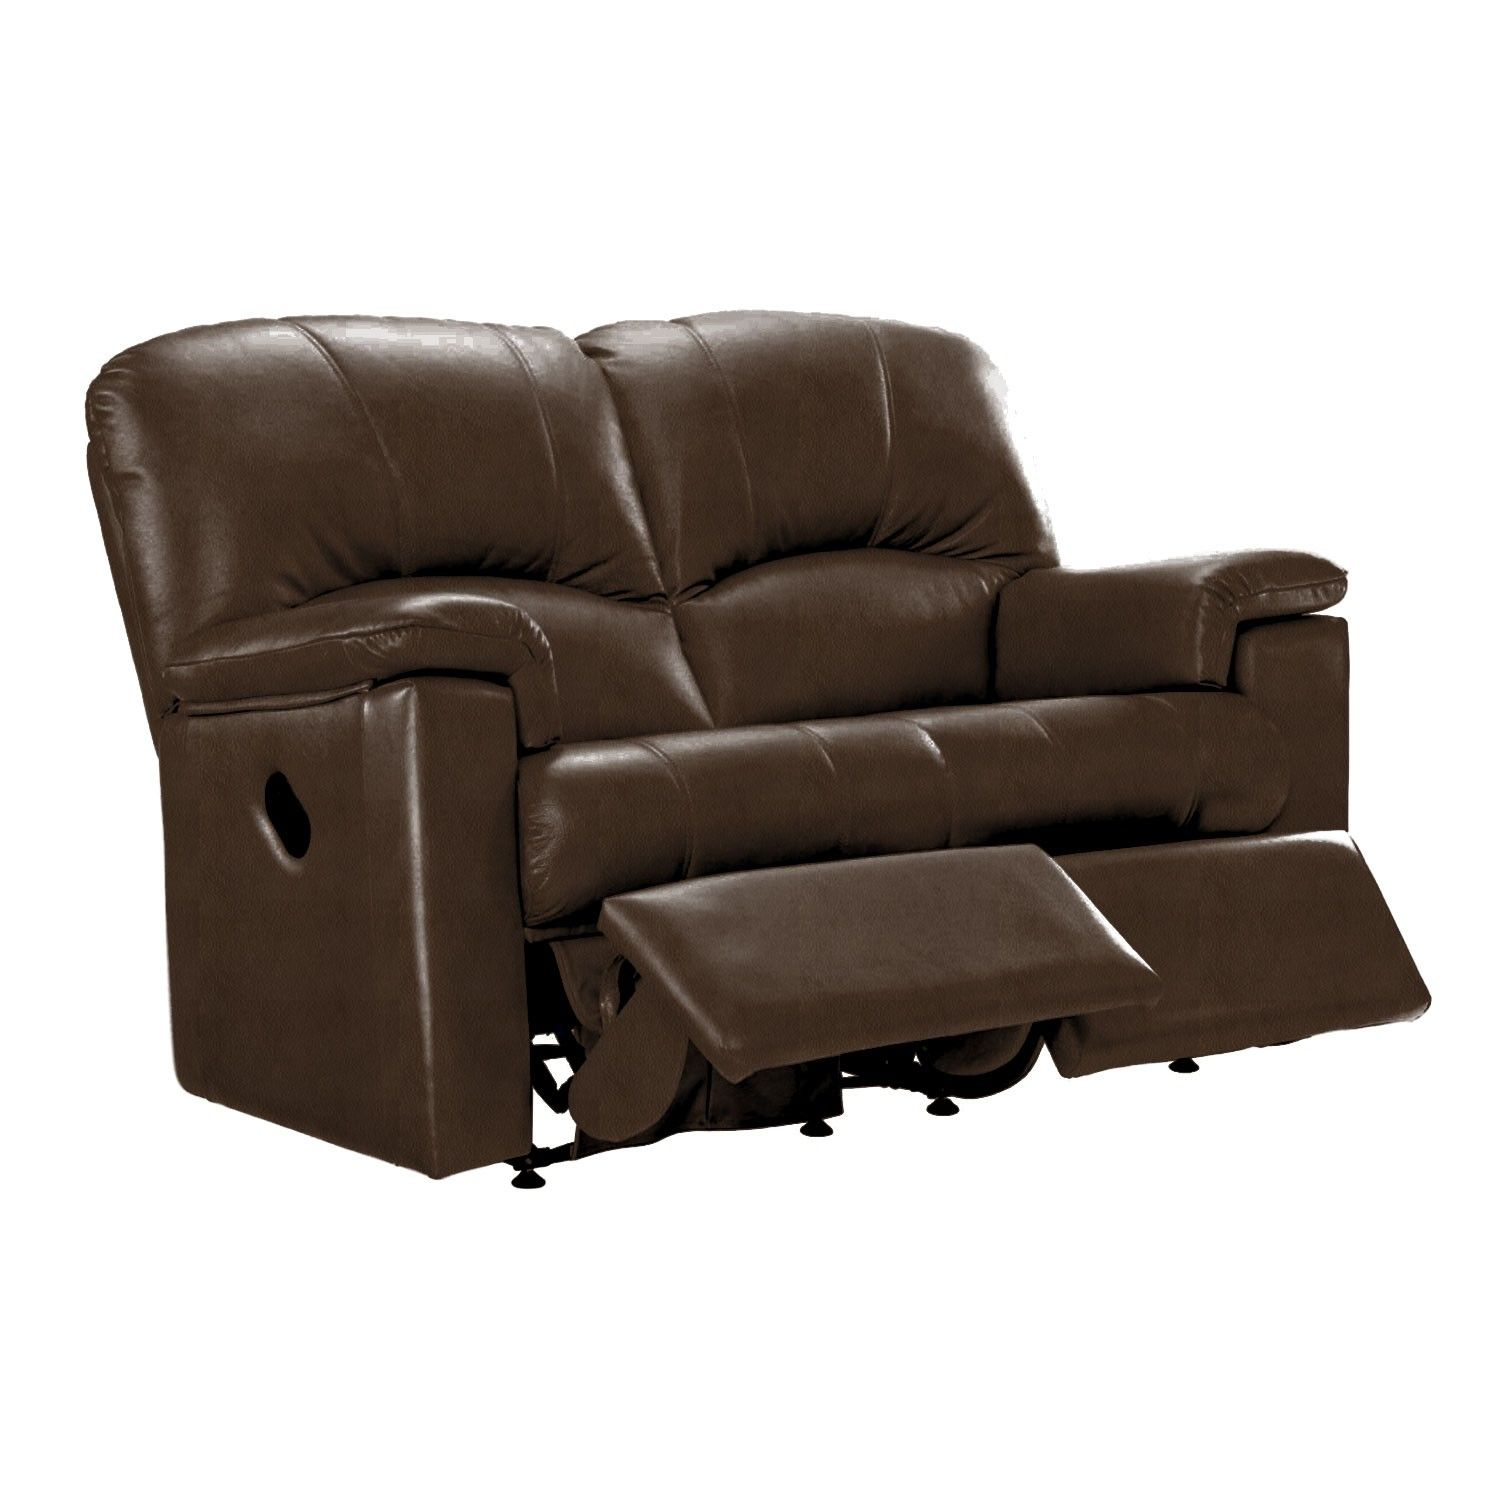 inspirational two seater recliner sofa plan-Superb Two Seater Recliner sofa Construction